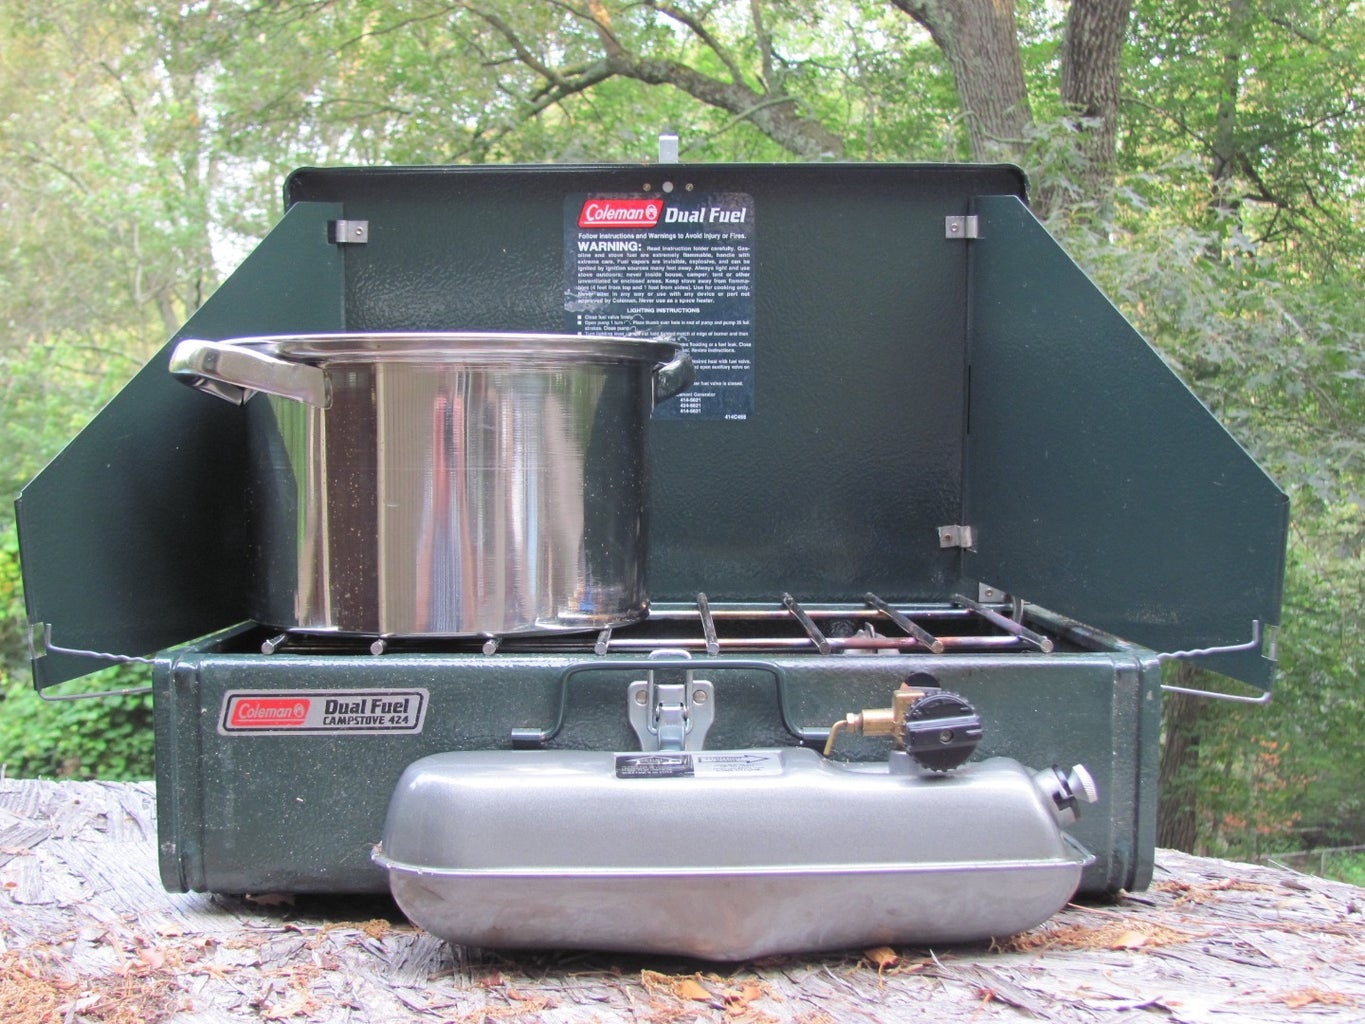 Get Your Camp Stove, Basin and 'Bug Sprayer' and Enjoy Washing Your Hair!